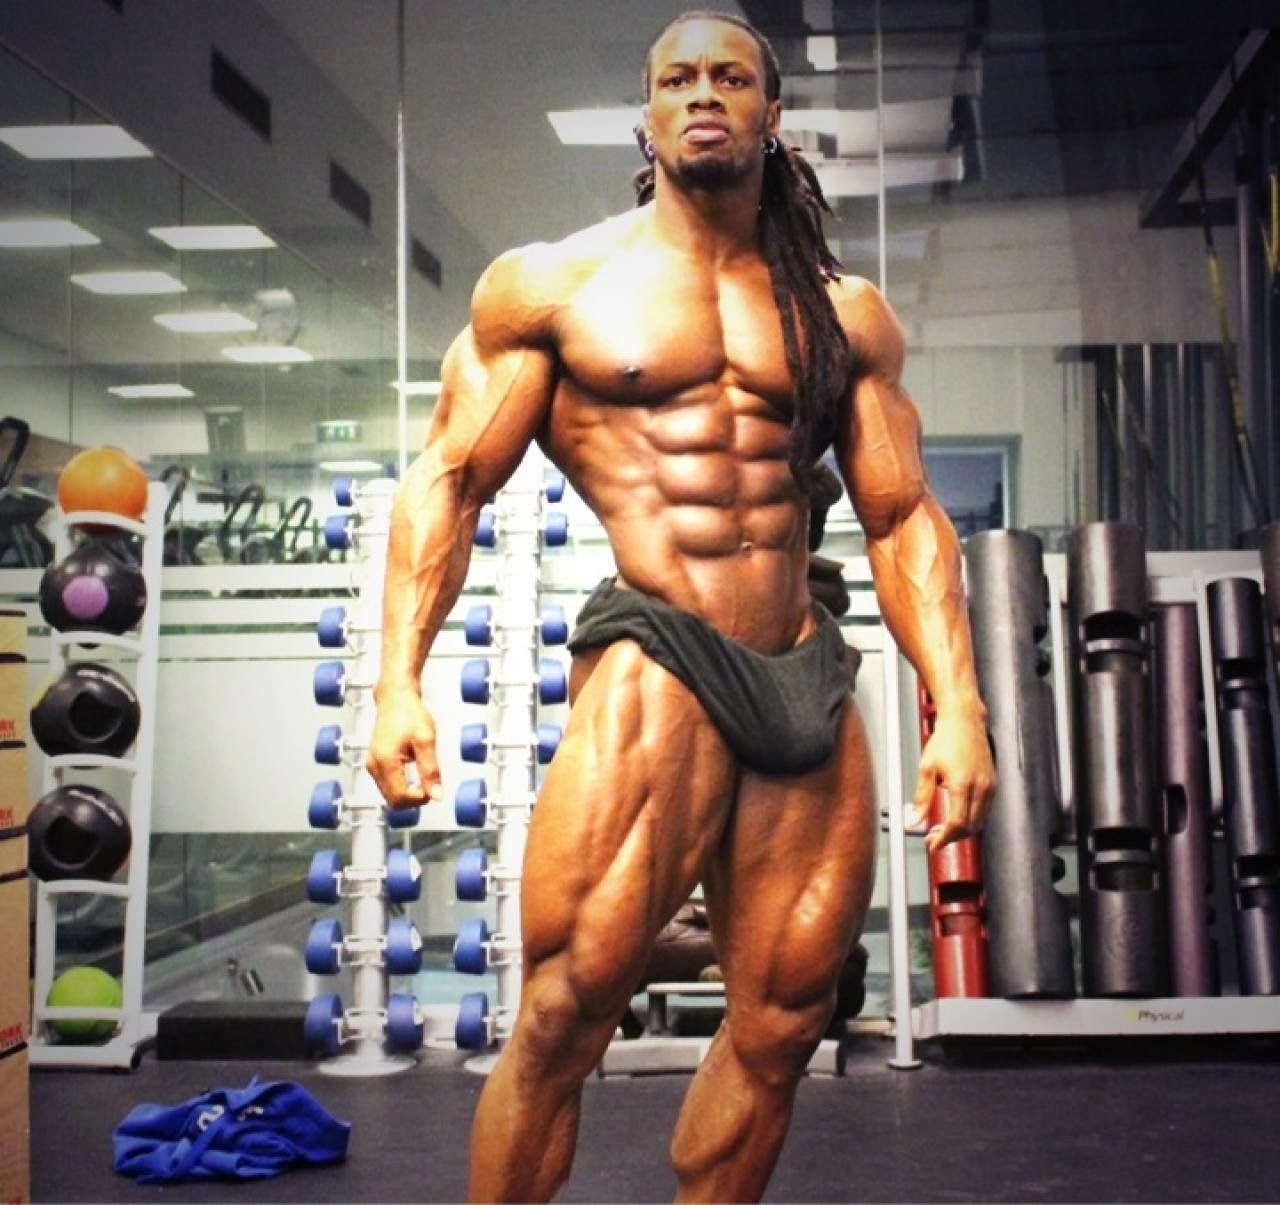 Ulisses Jr World's Top Fitness Model